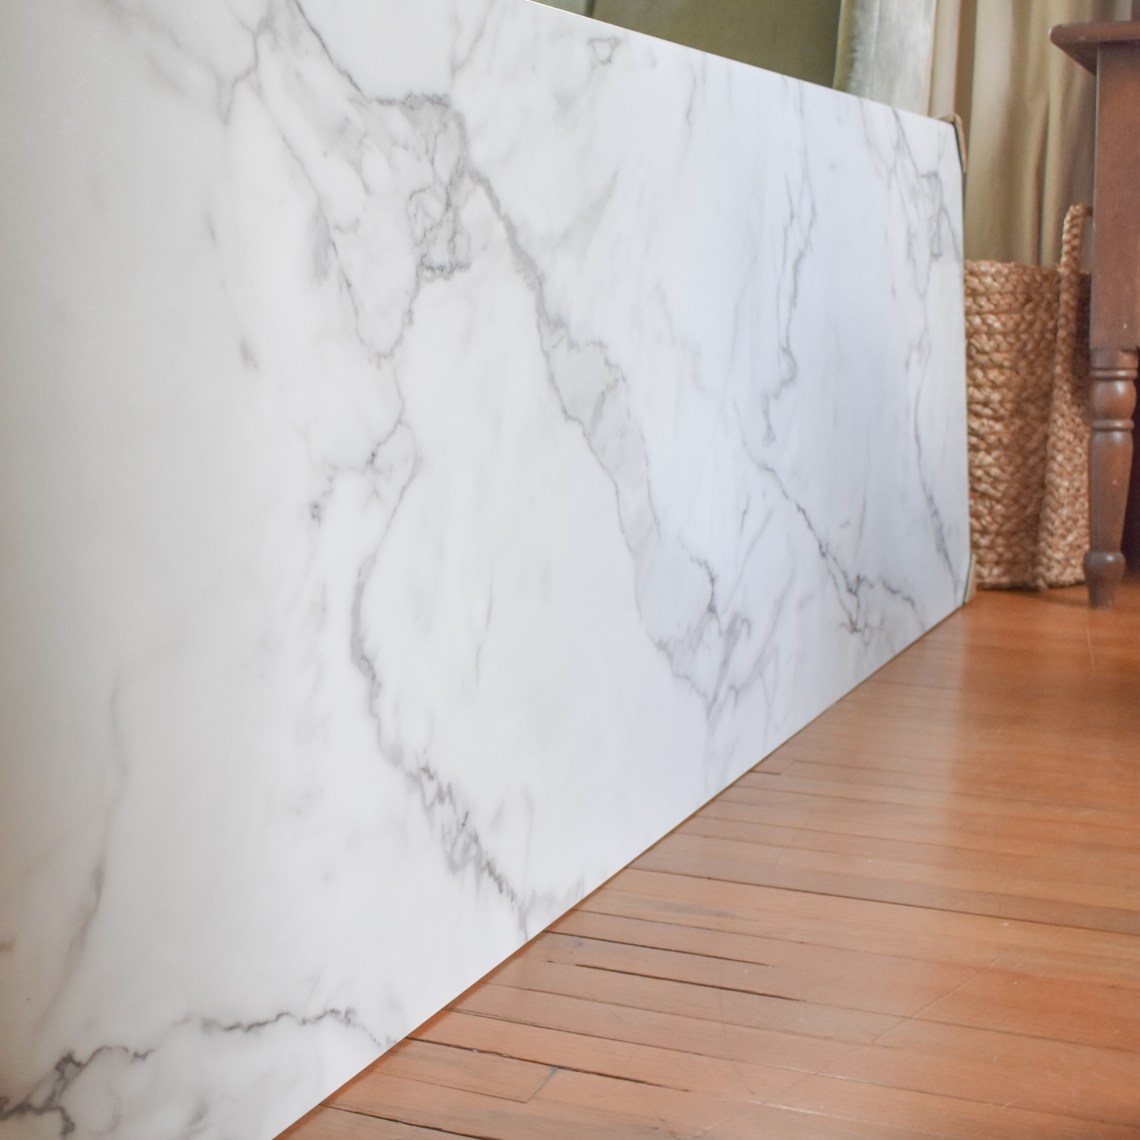 Why We Chose Laminate Countertops